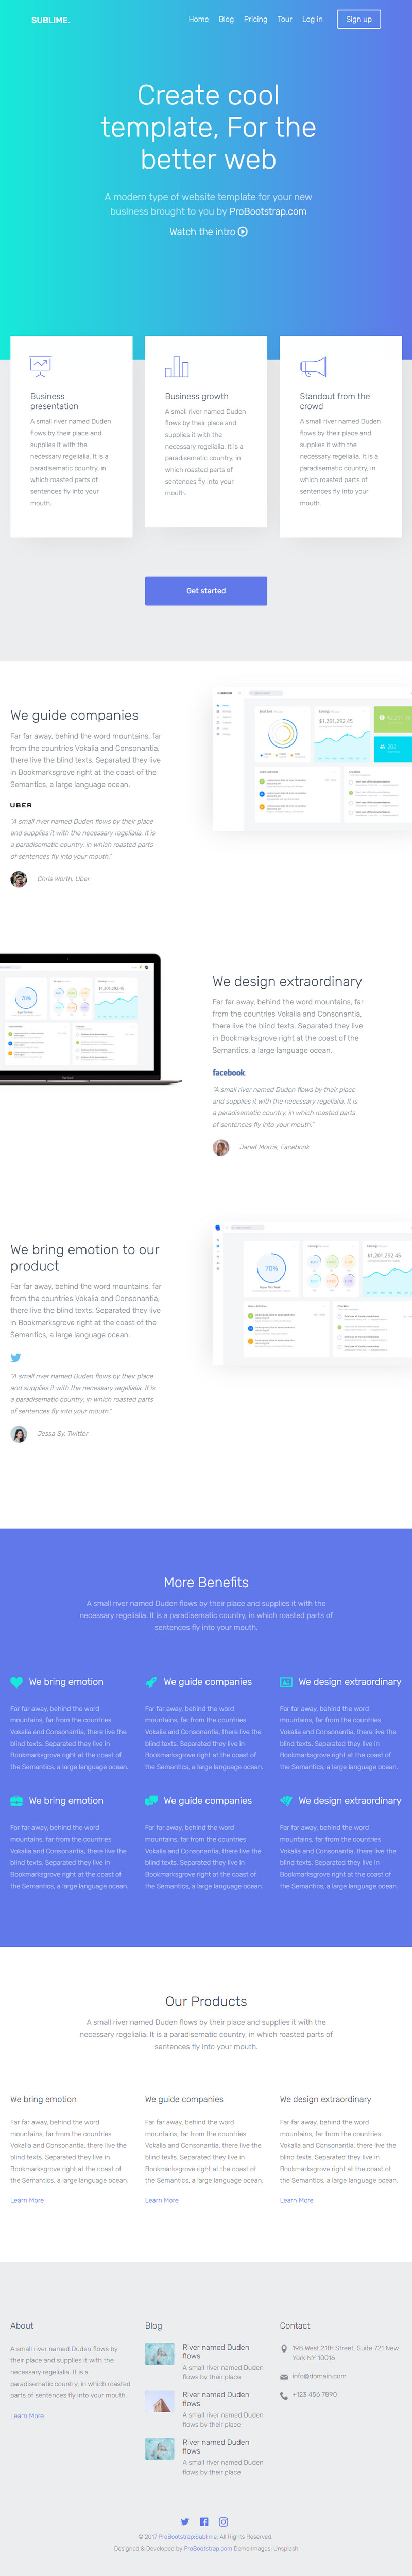 free bootstrap website templates - sublime free bootstrap website template